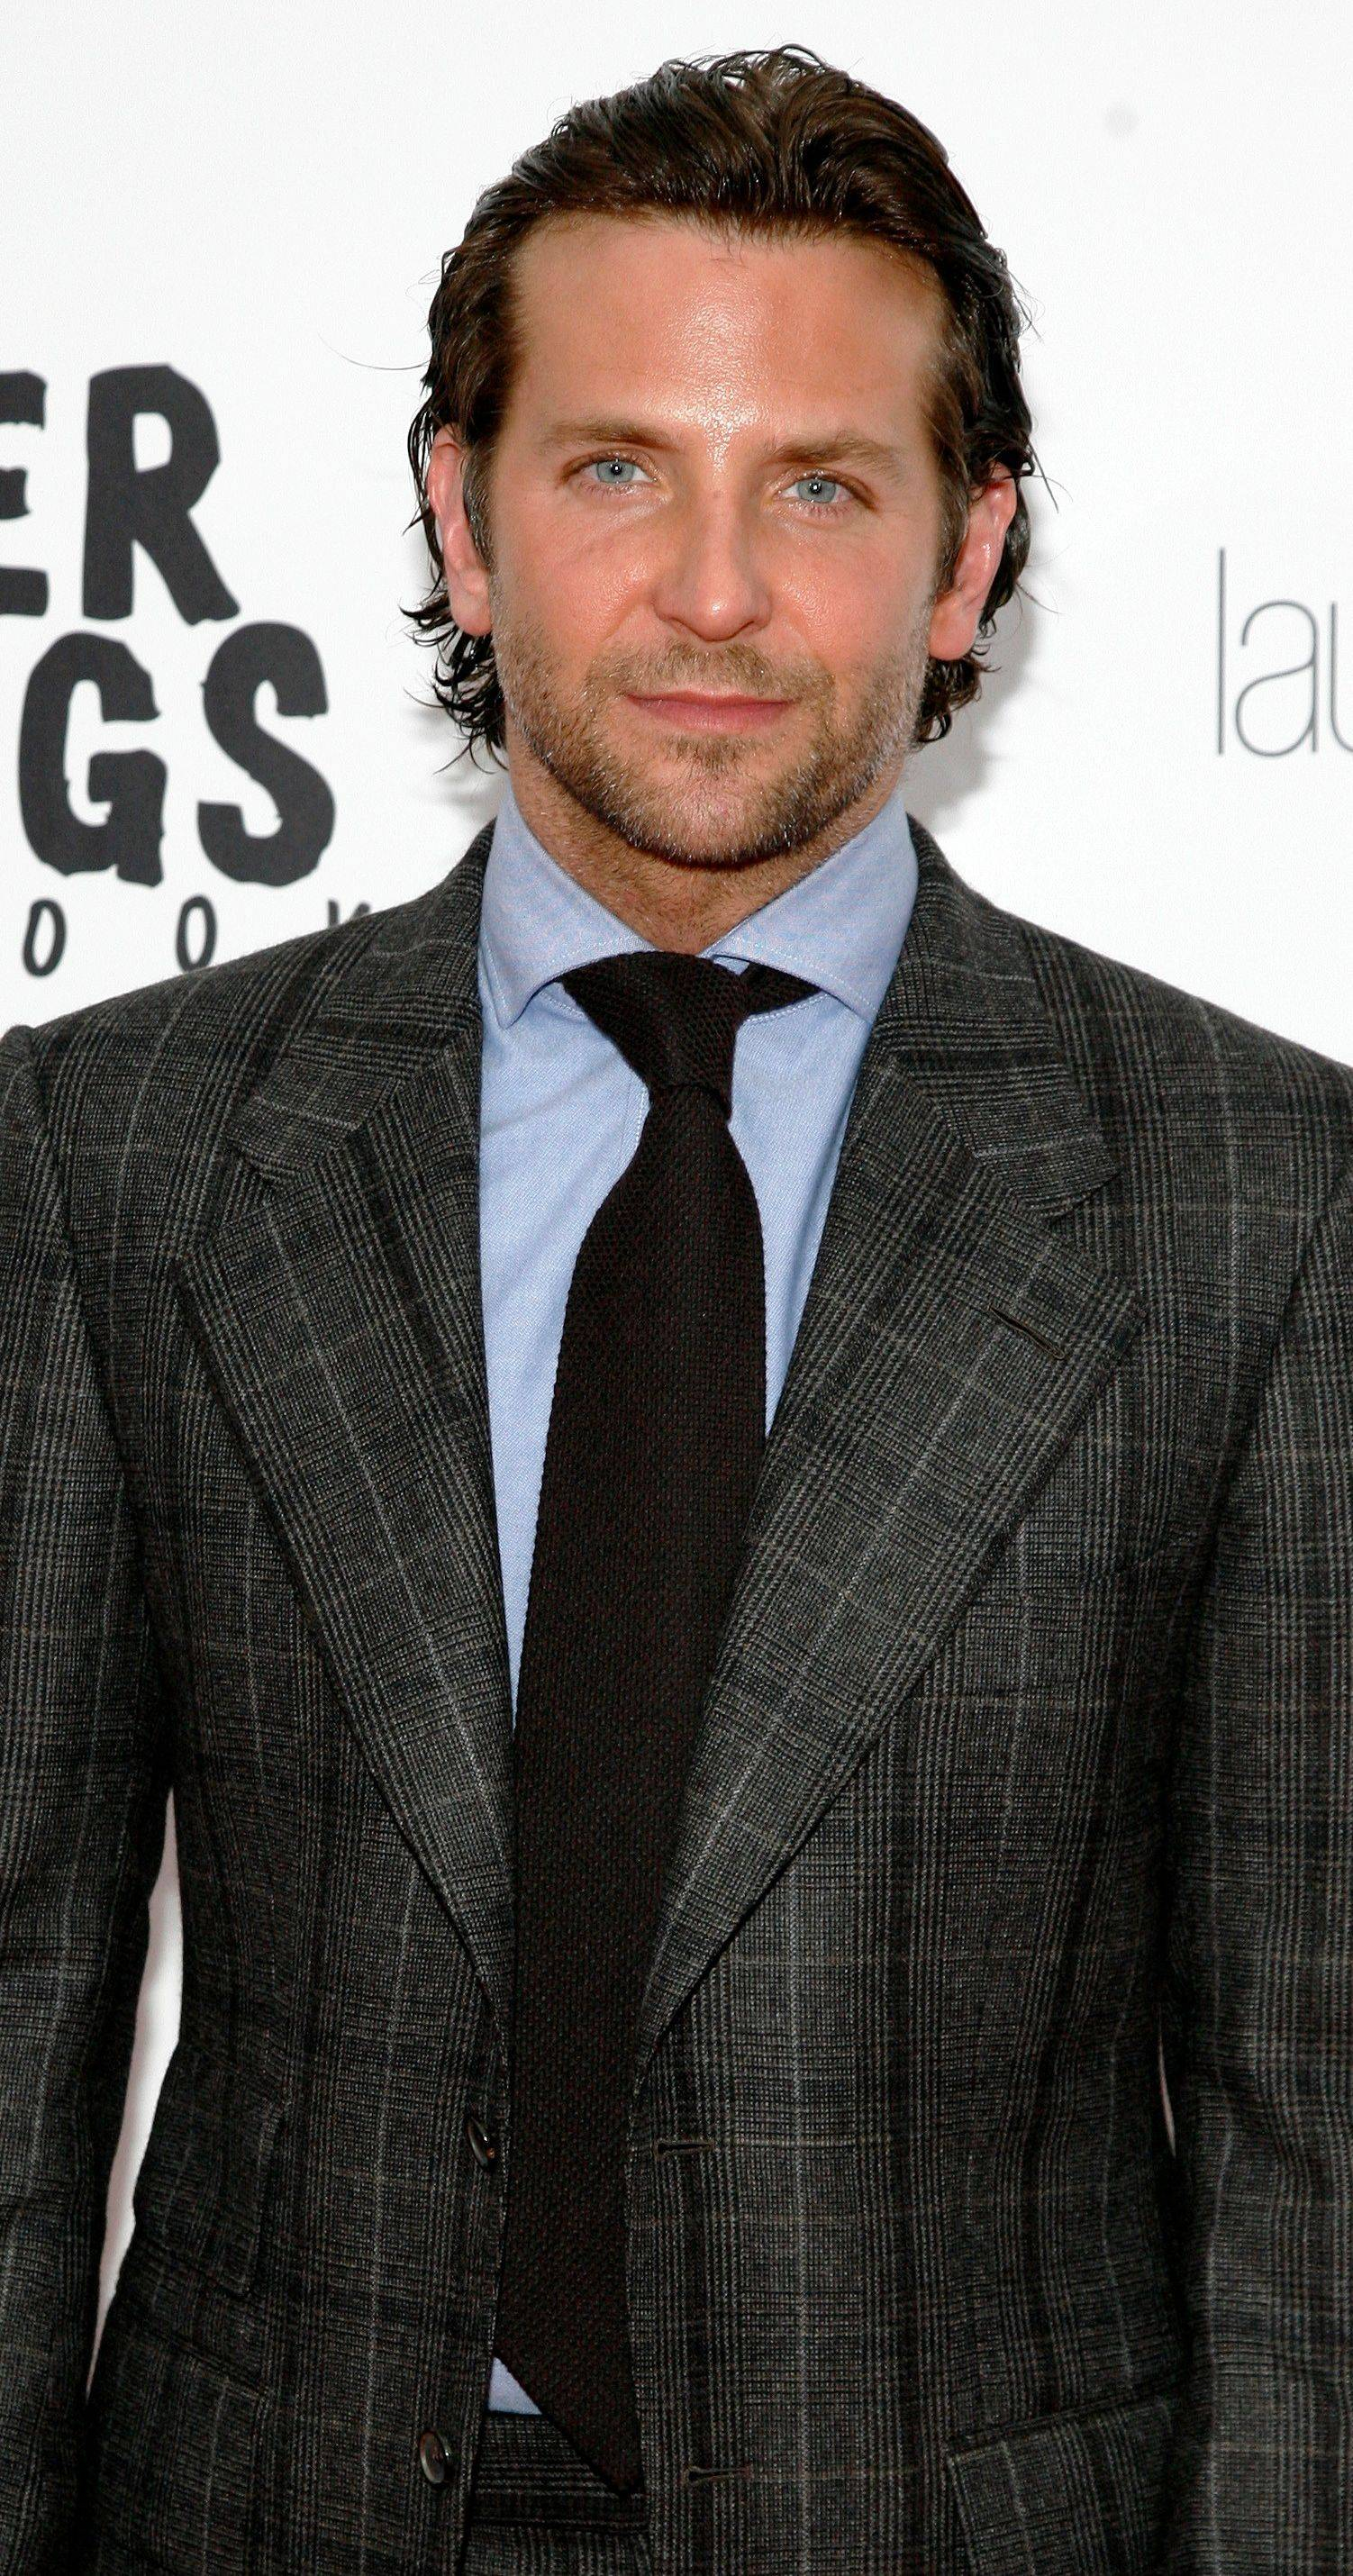 "Bradley Cooper attends the premiere of ""Silver Linings Playbook,"" to benefit the Tribeca Film Institute's Tribeca Teaches Educational Programs at the Ziegfeld Theatre."